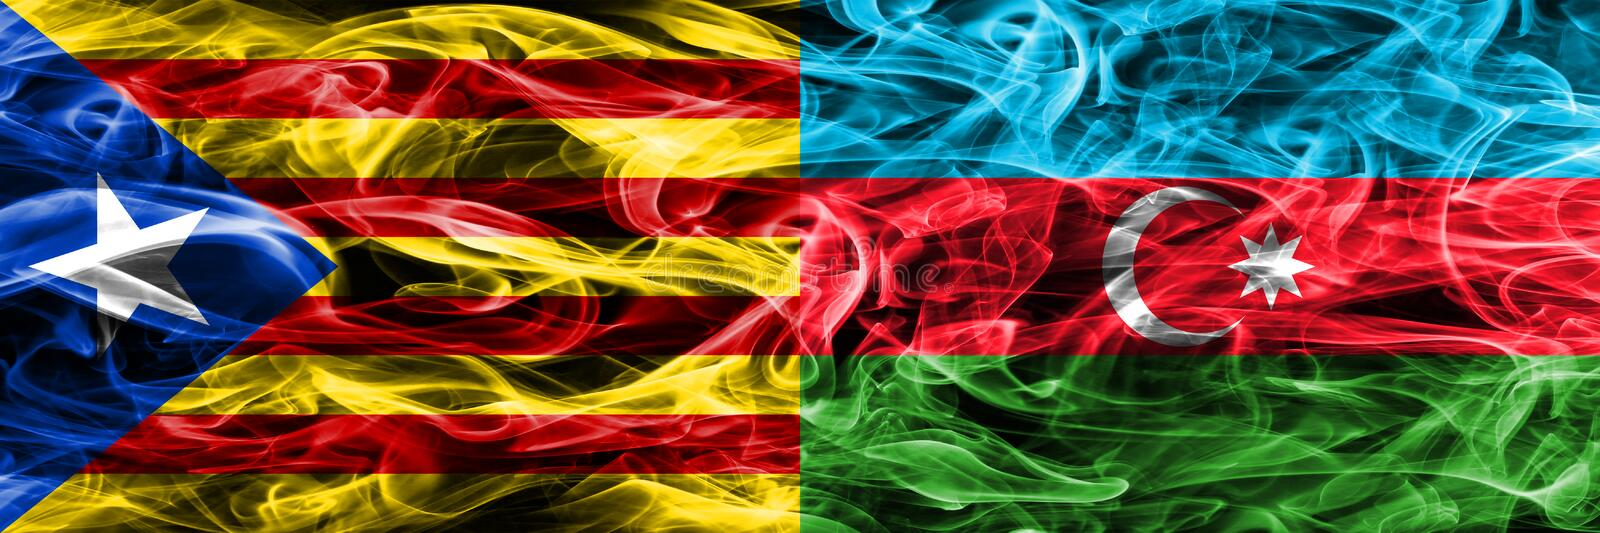 Catalonia vs Azerbaijan copy smoke flags placed side by side. Thick colored silky smoke flags of Catalan and Azerbaijan copy.  stock illustration